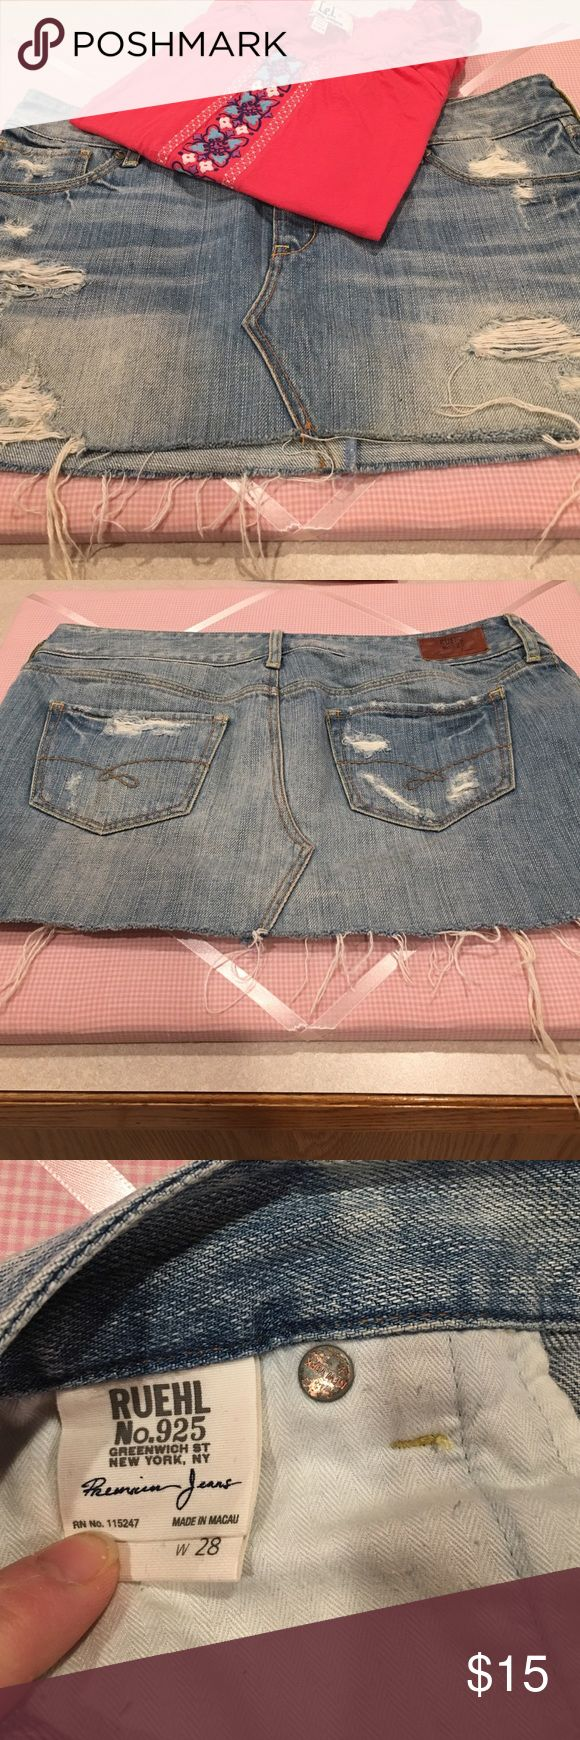 💠RUEHL distressed jean skirt💠 Super cute distressed Jean skirt. In excellent condition. Only worn two times. Is 11 inches long and the waistline is approximately 17 inches. Let me know if you have any questions. Ruehl No. 925 Skirts